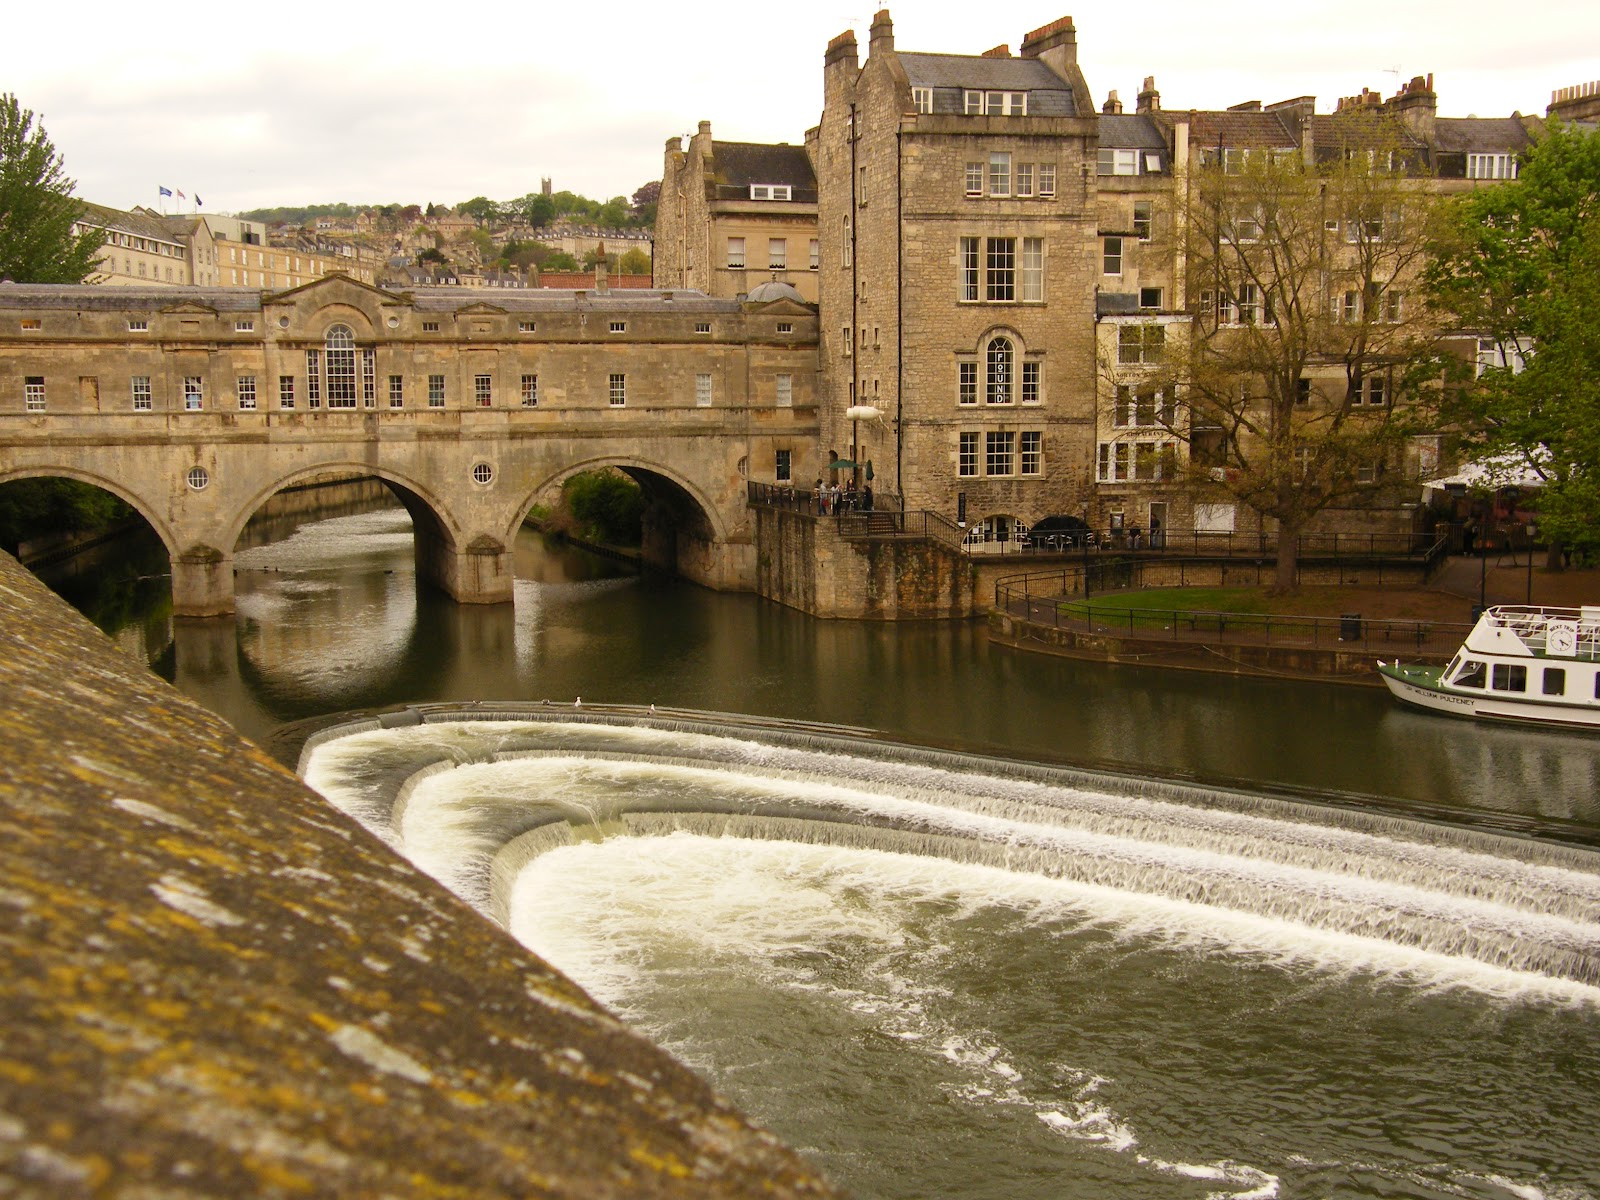 bridges this week s frifotos theme twitter travel discussion the famous pulteney bridge of bath england was completed in 1773 and is one of only 4 bridges in the world that have shops spanning either side